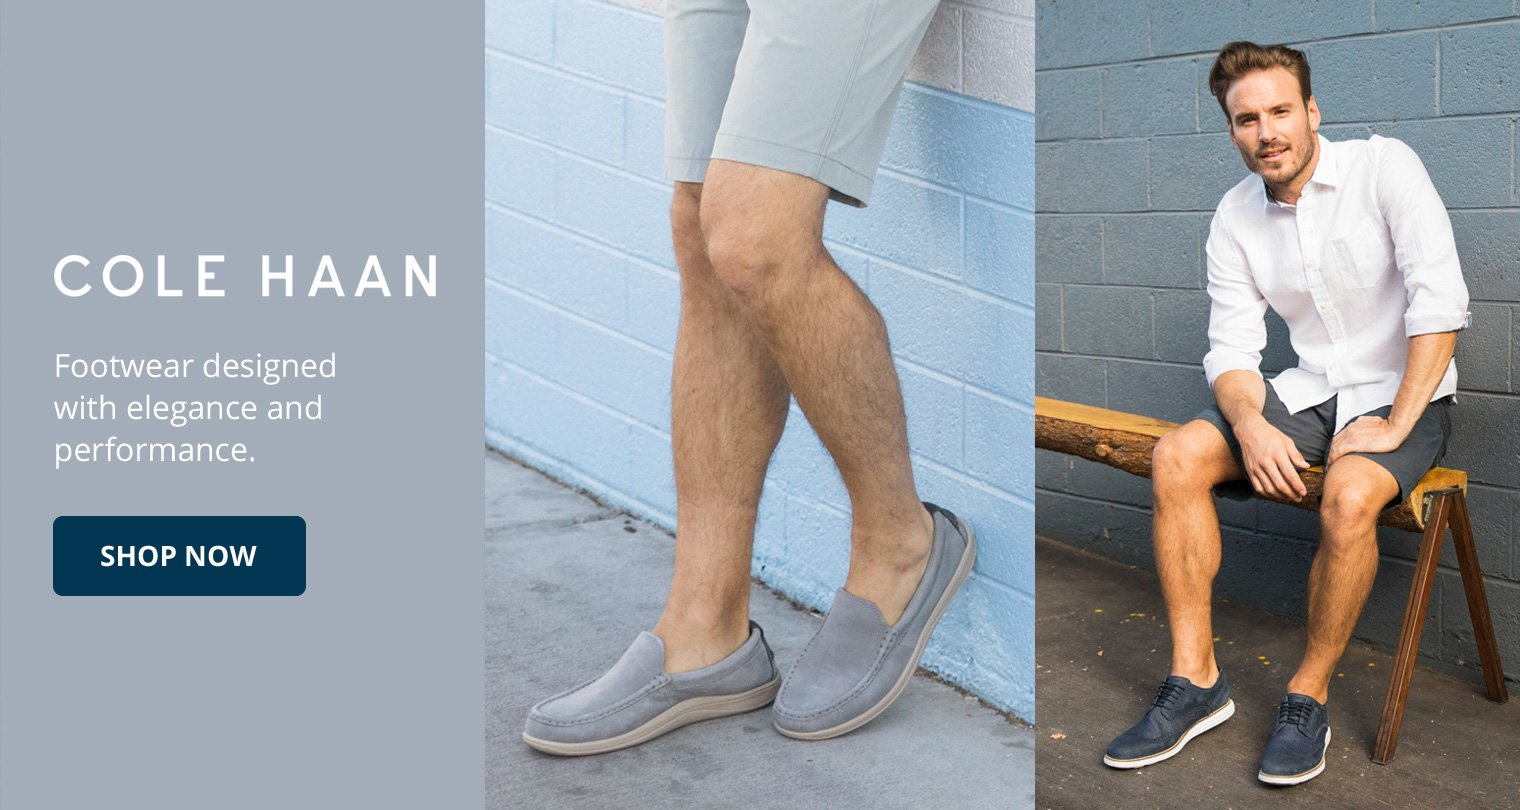 Cole Haan. Footwear designed with elegance and performance. Shop Now.